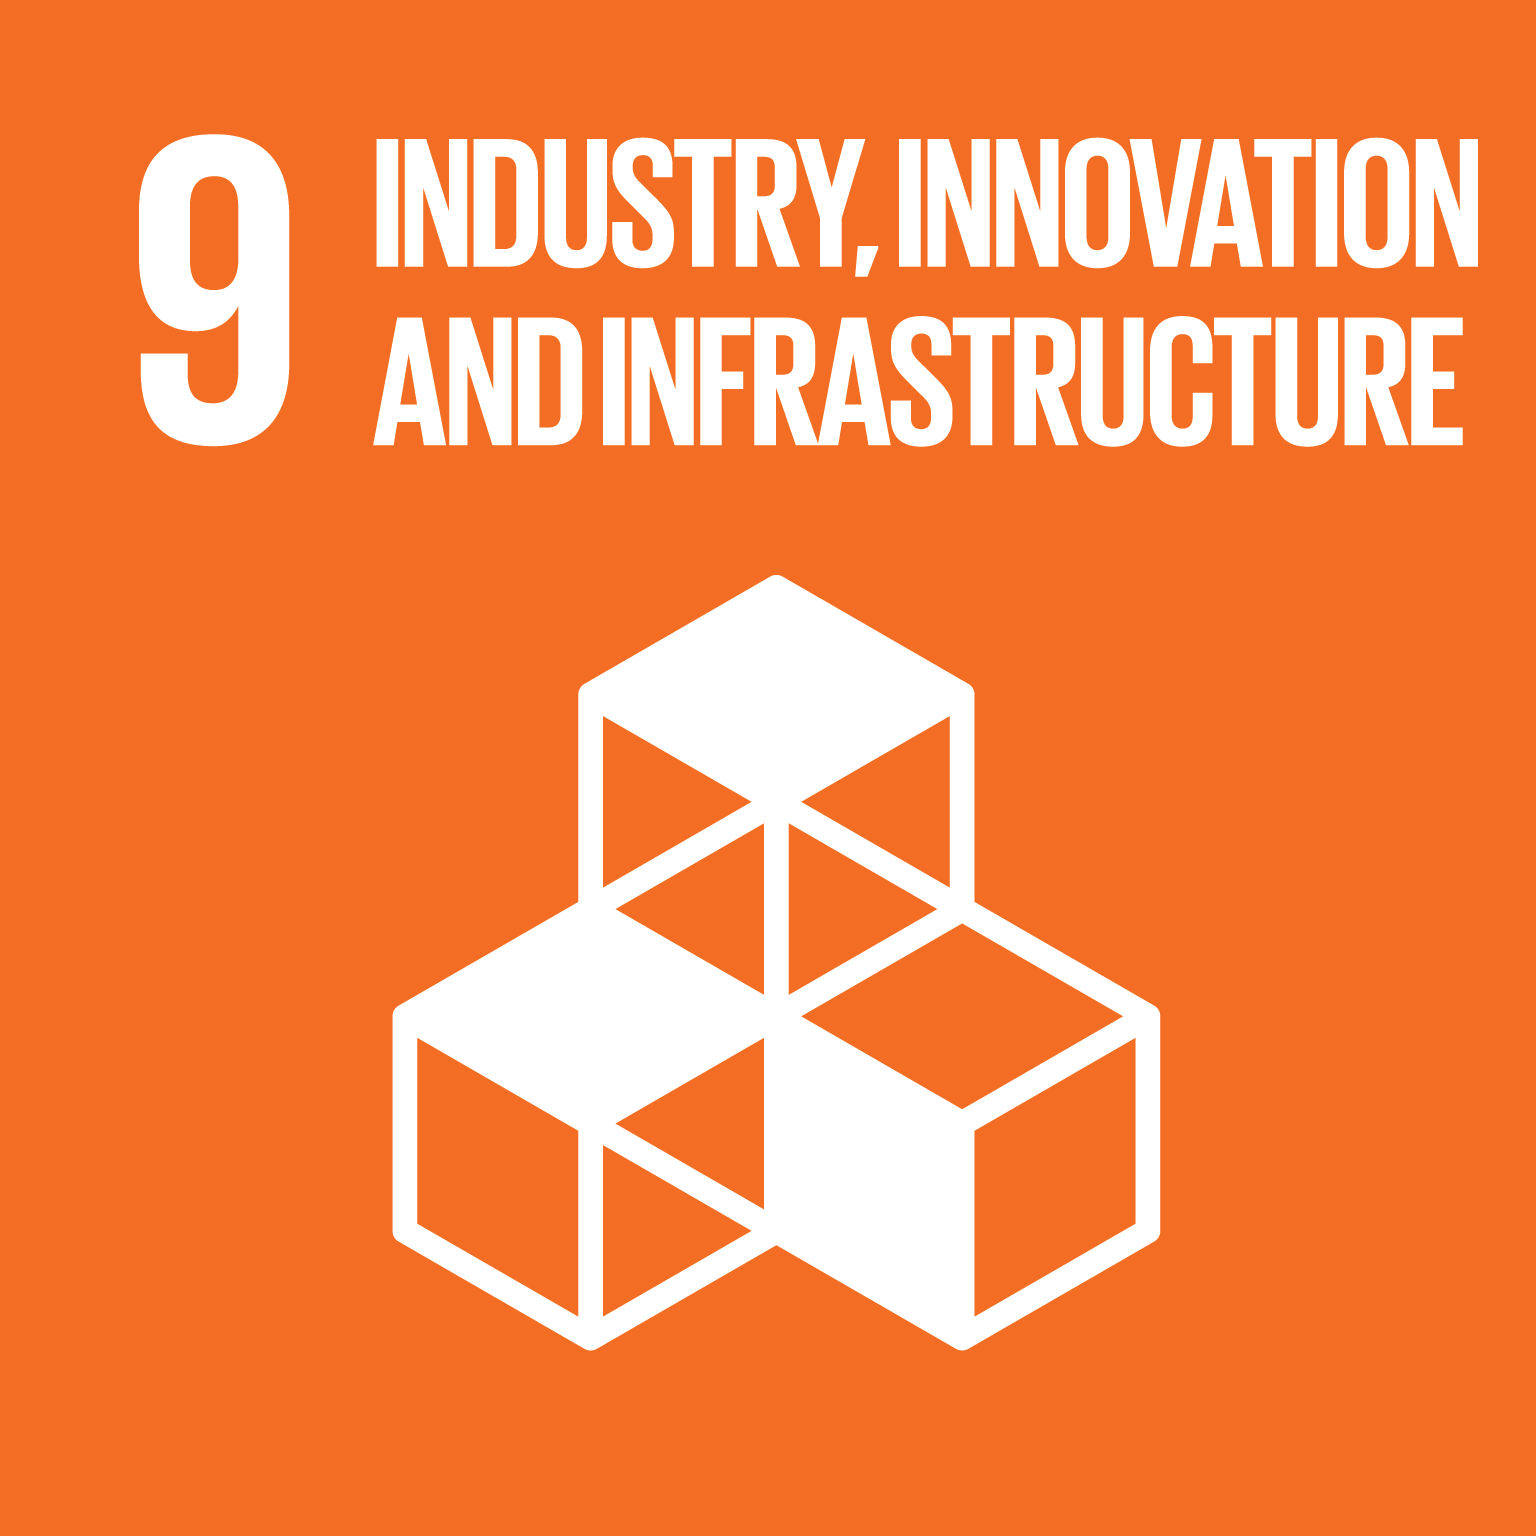 Industry, innovation and infrastructure logo.